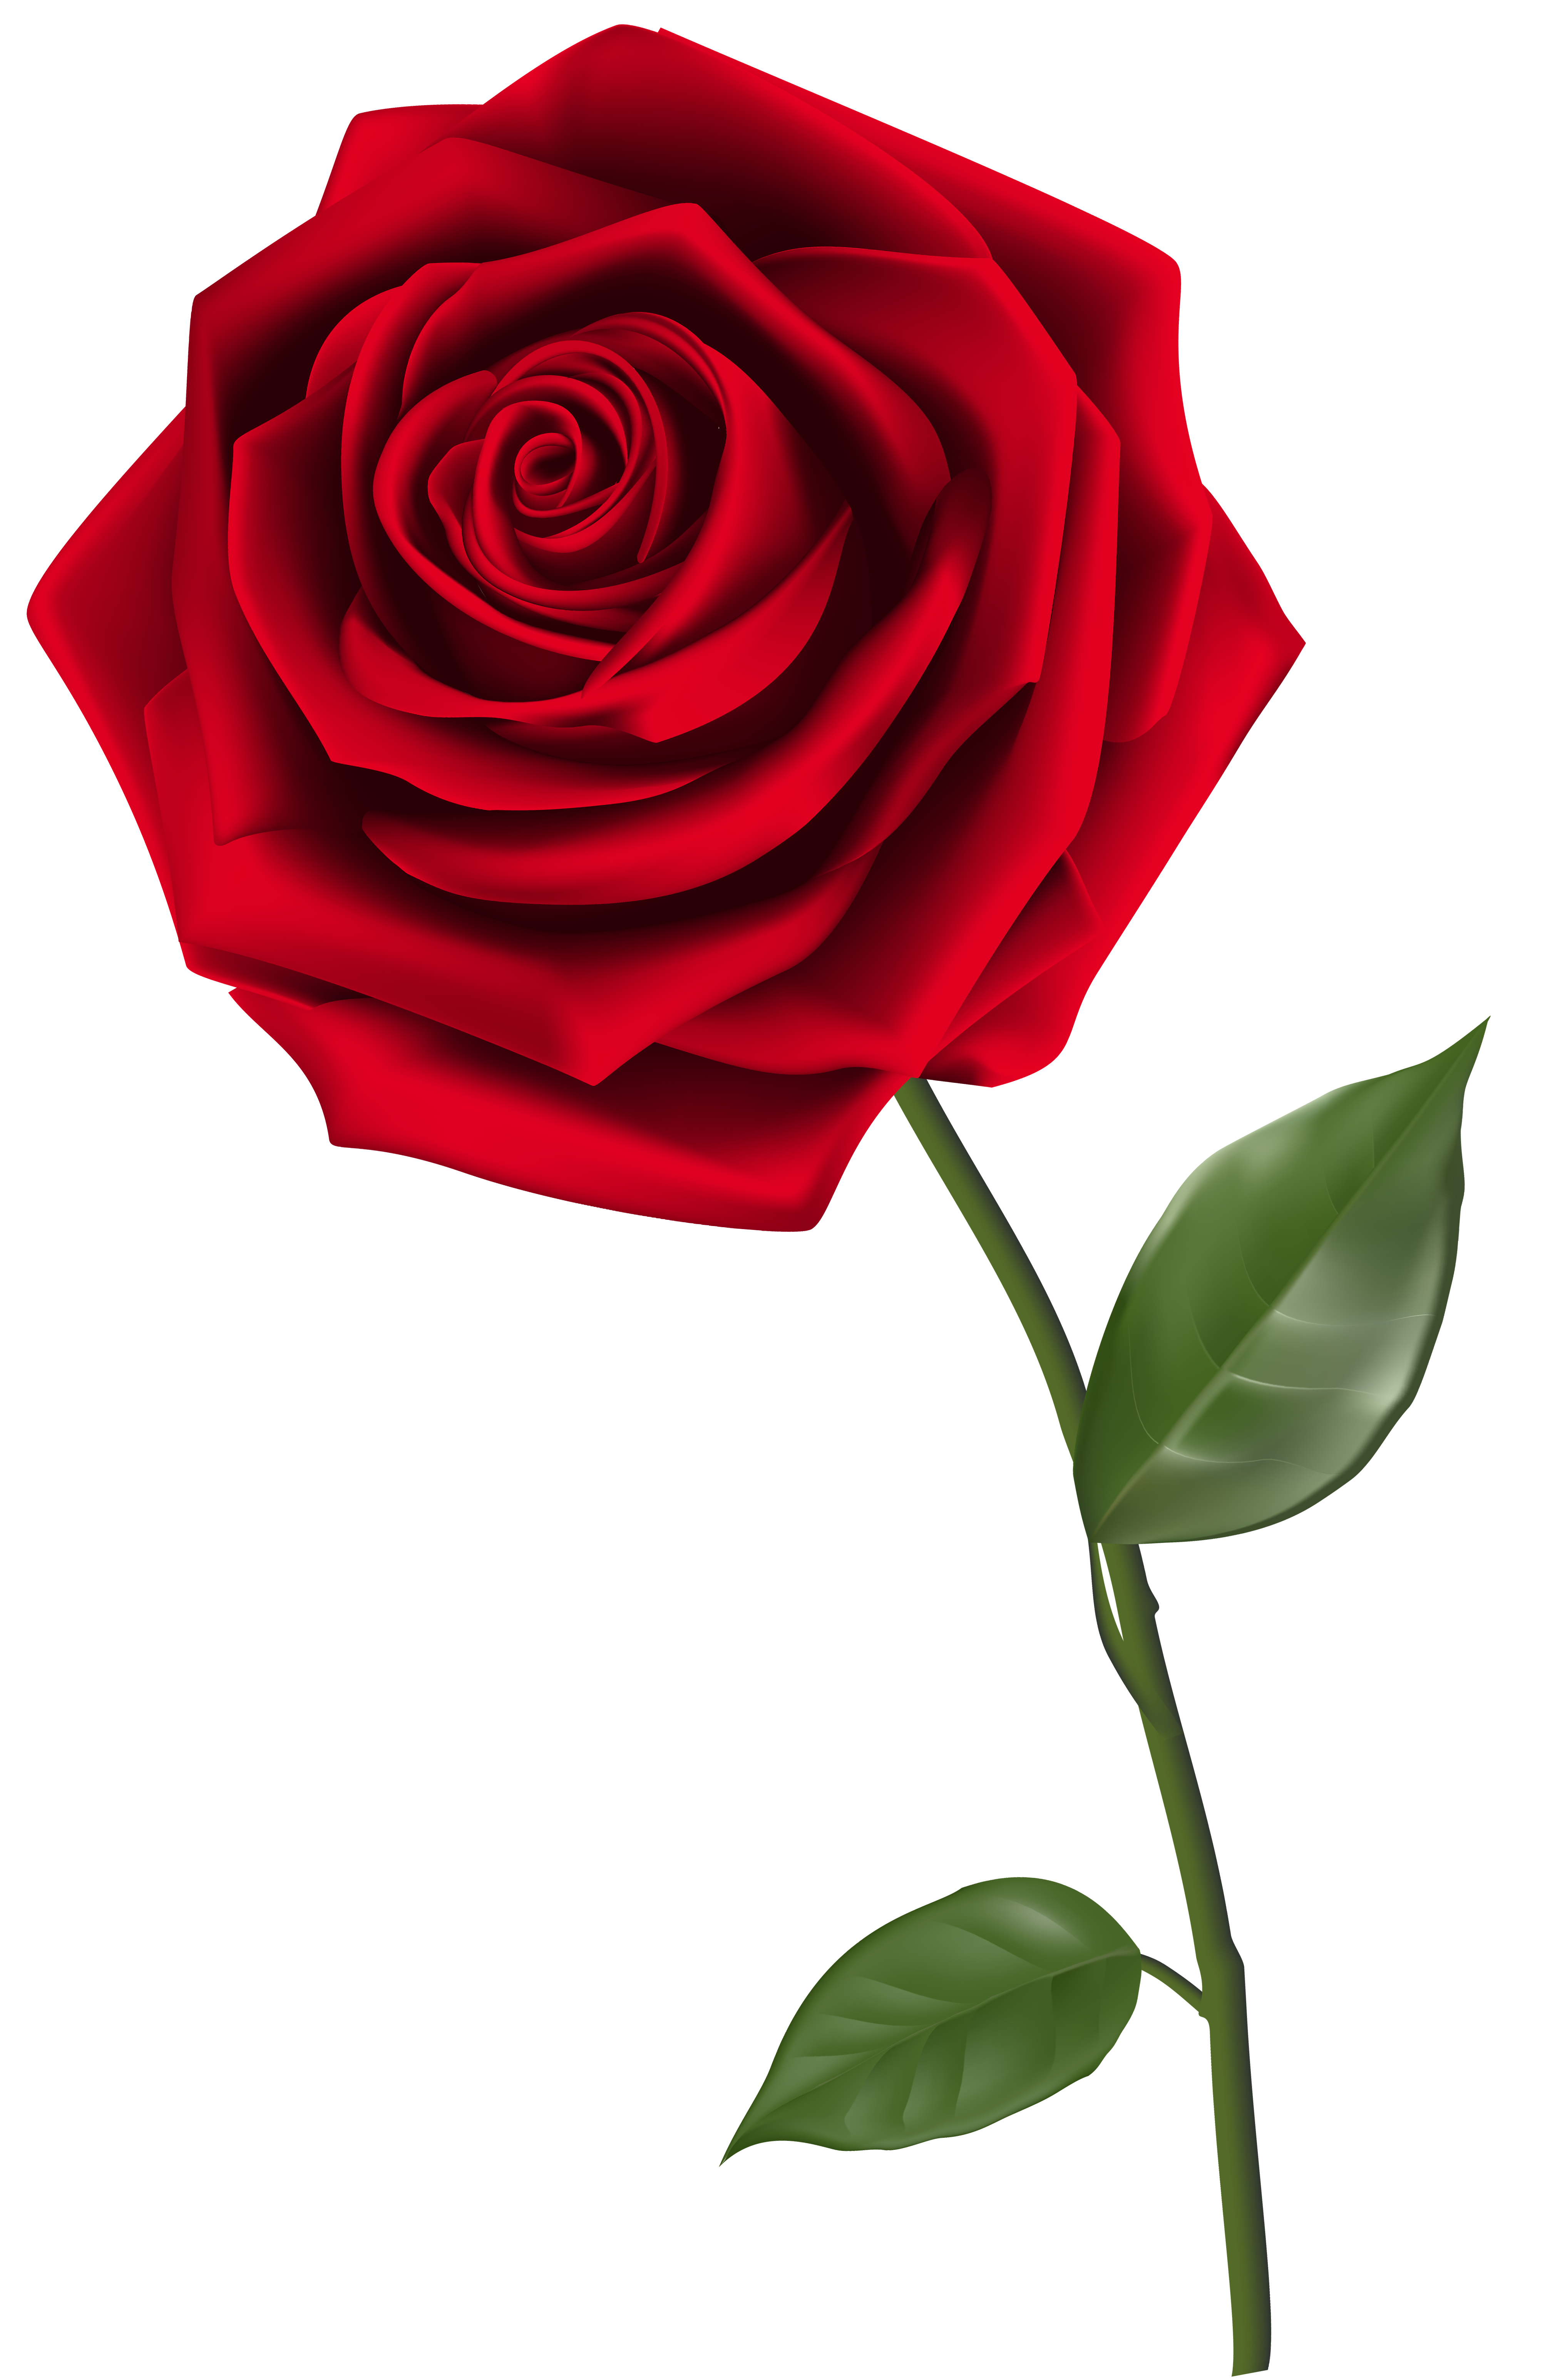 4026x6181 Single Red Rose Png Clipart Imageu200b Gallery Yopriceville